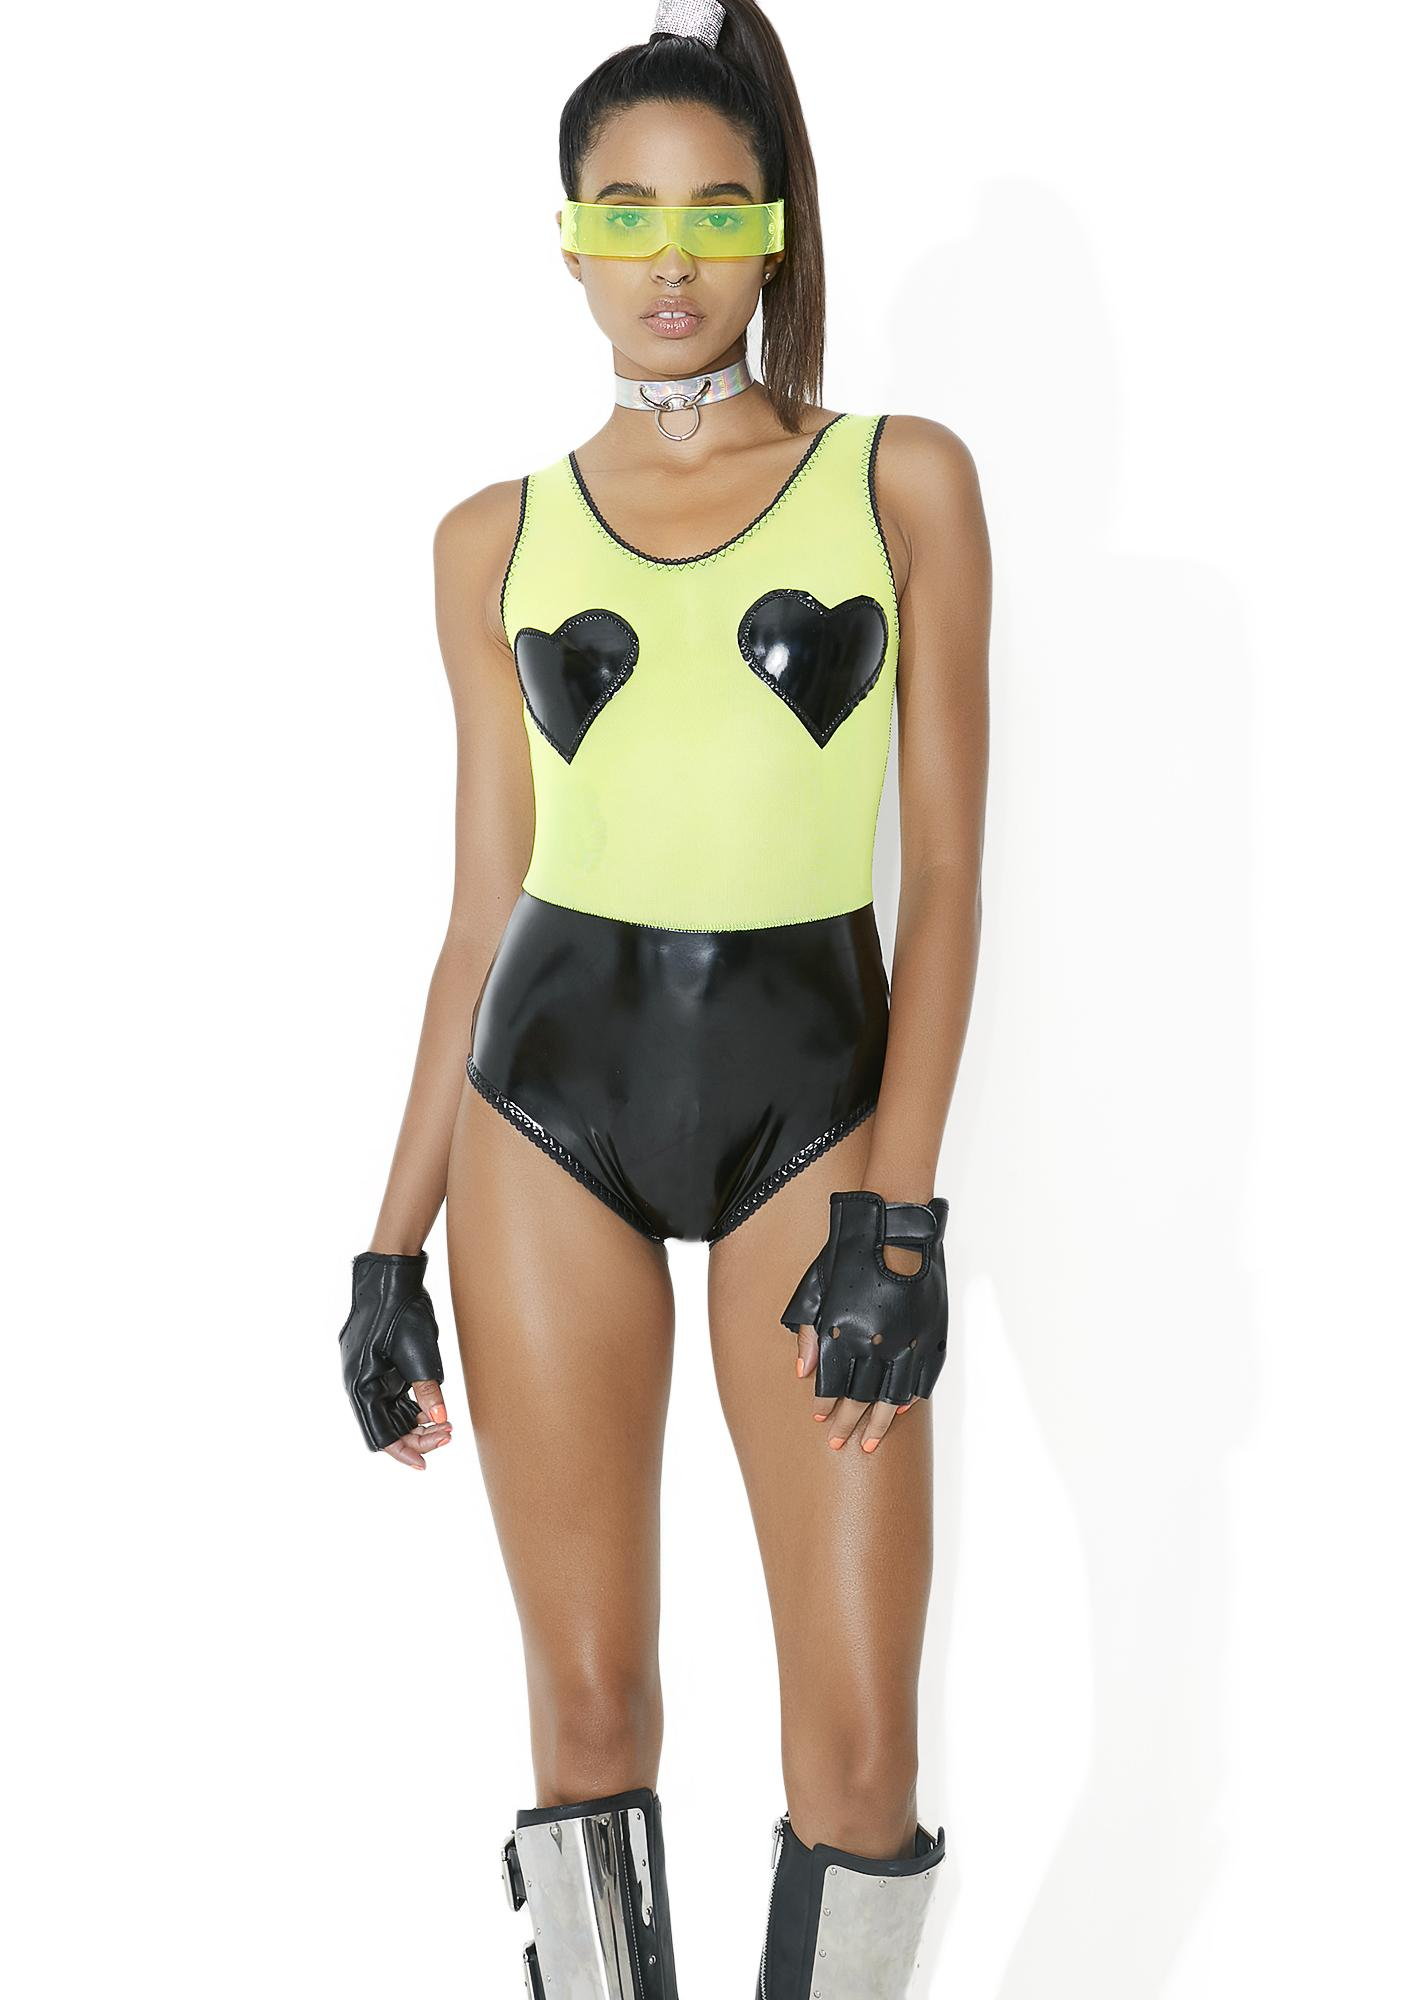 Bedroom Behavior Lingerie Neon Valentine Latex Bodysuit